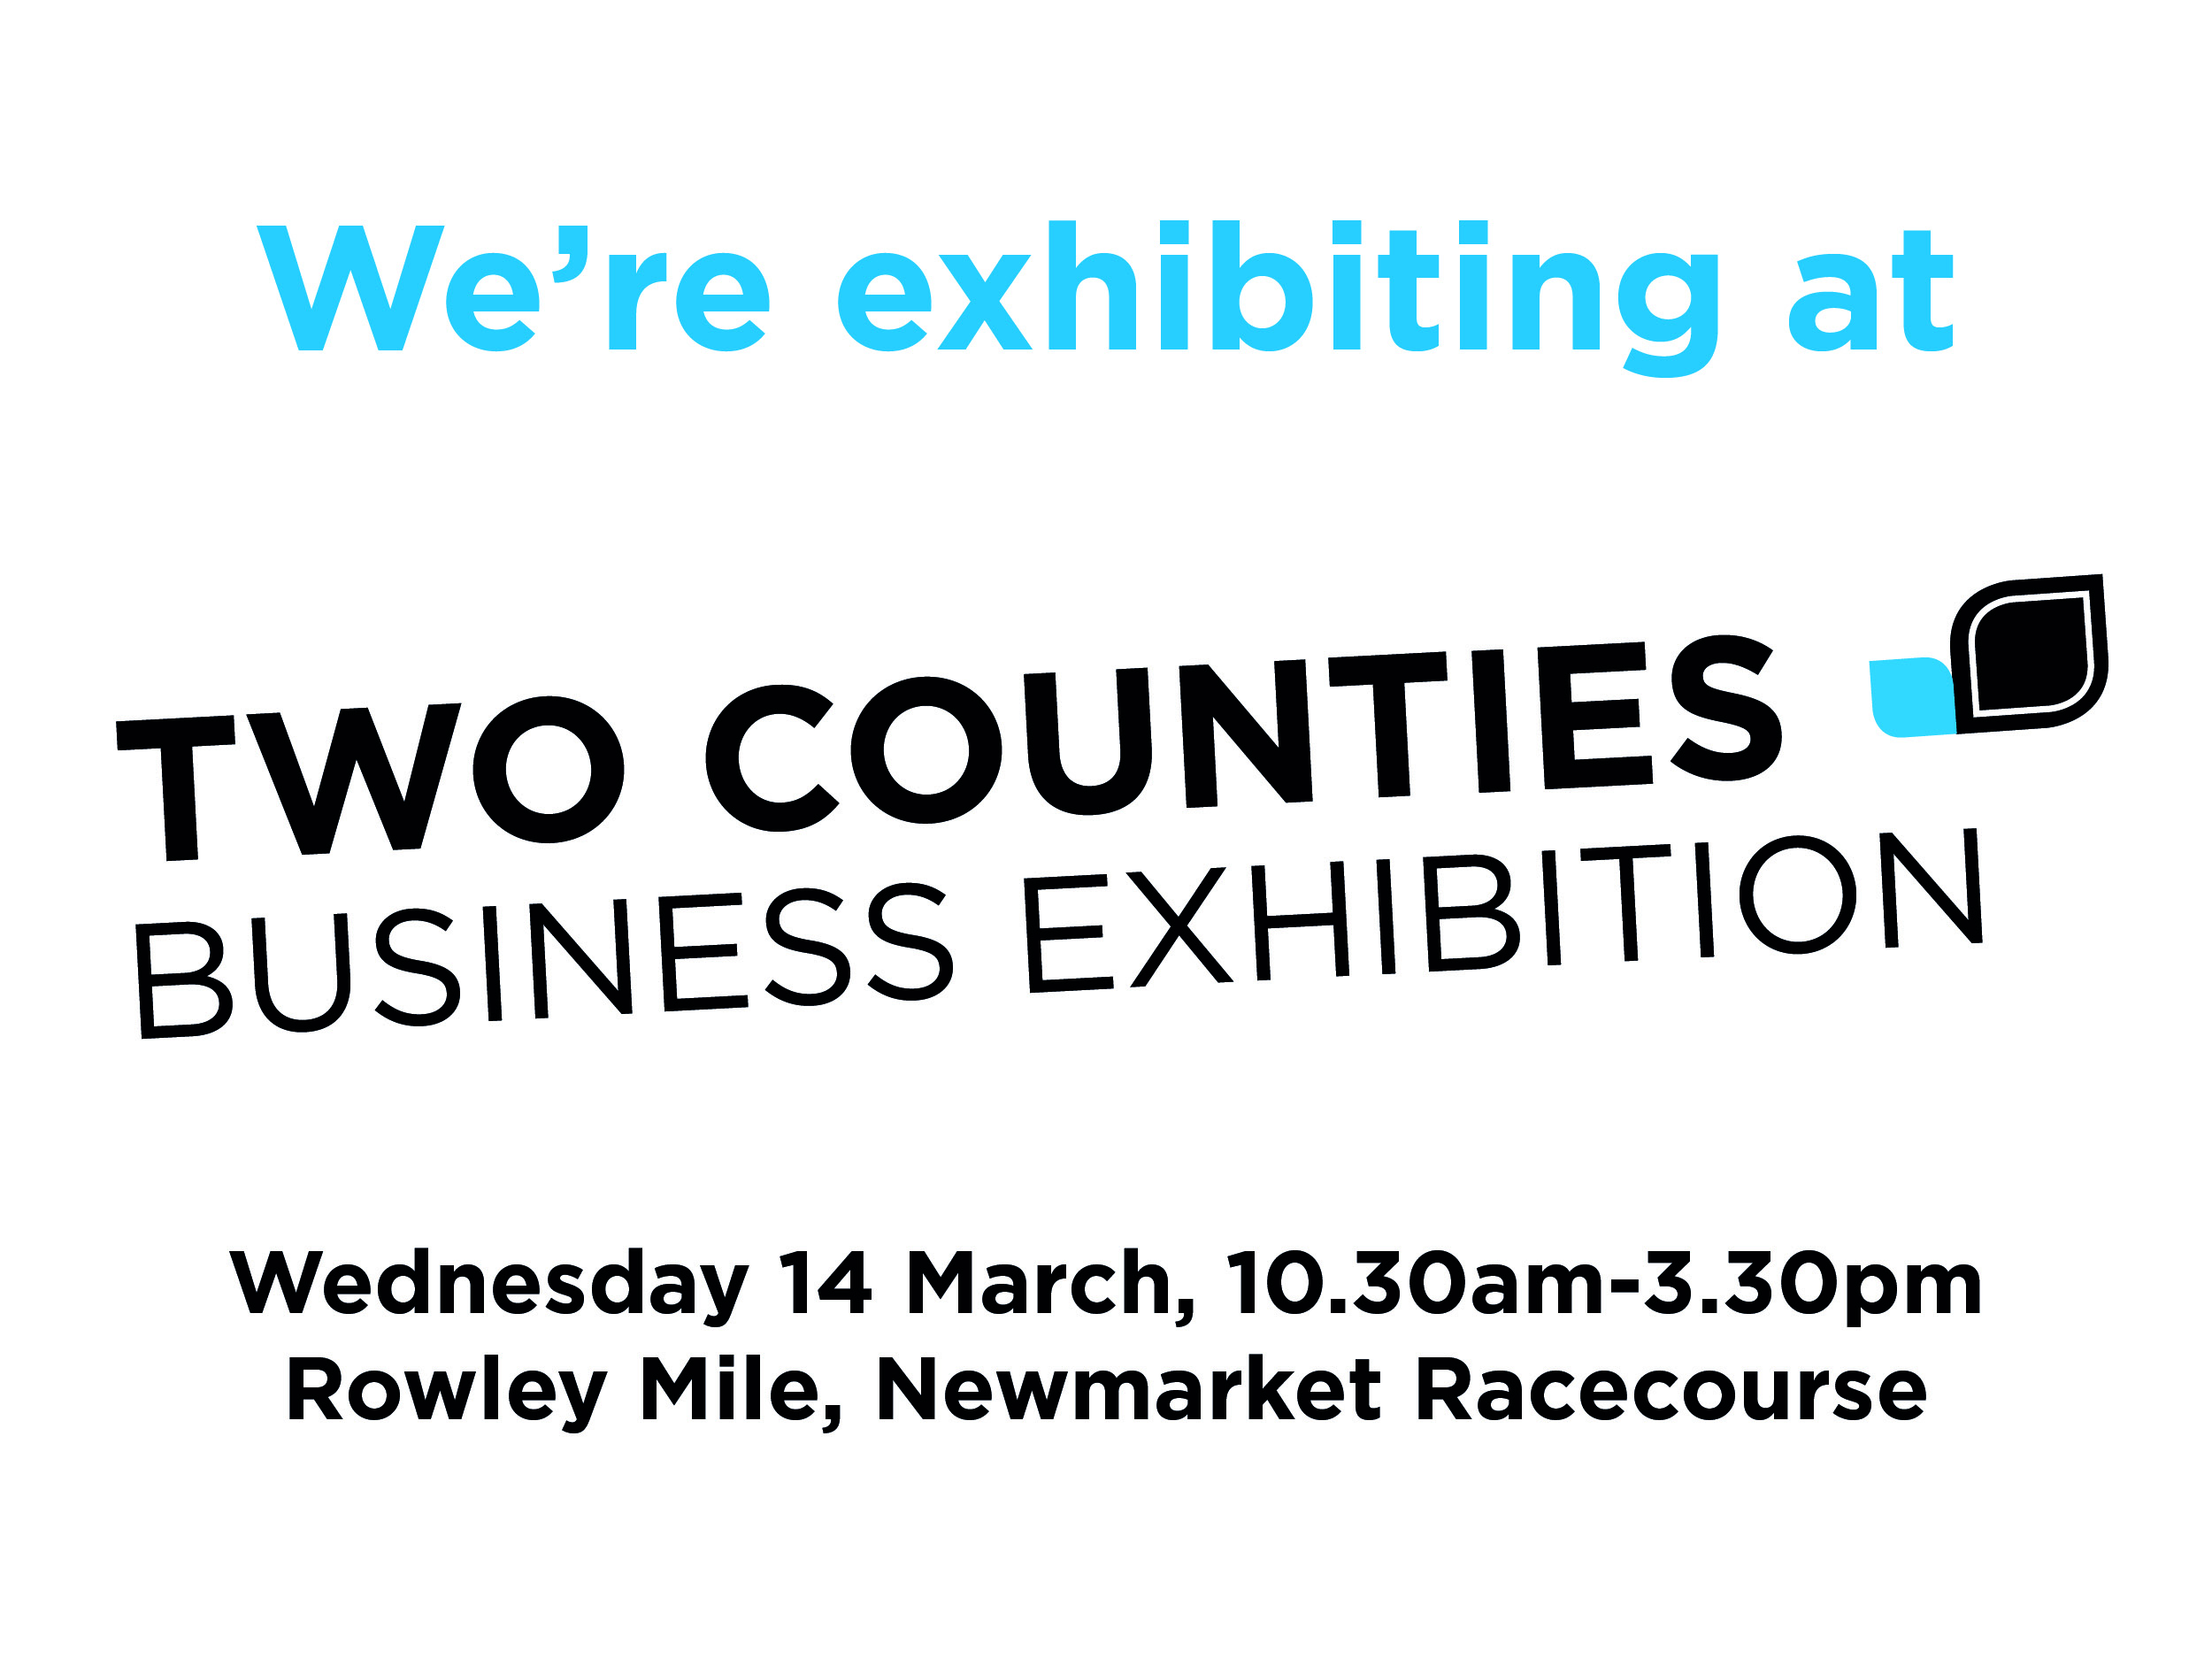 We will be exhibiting at the exhibition on the 14th of March...